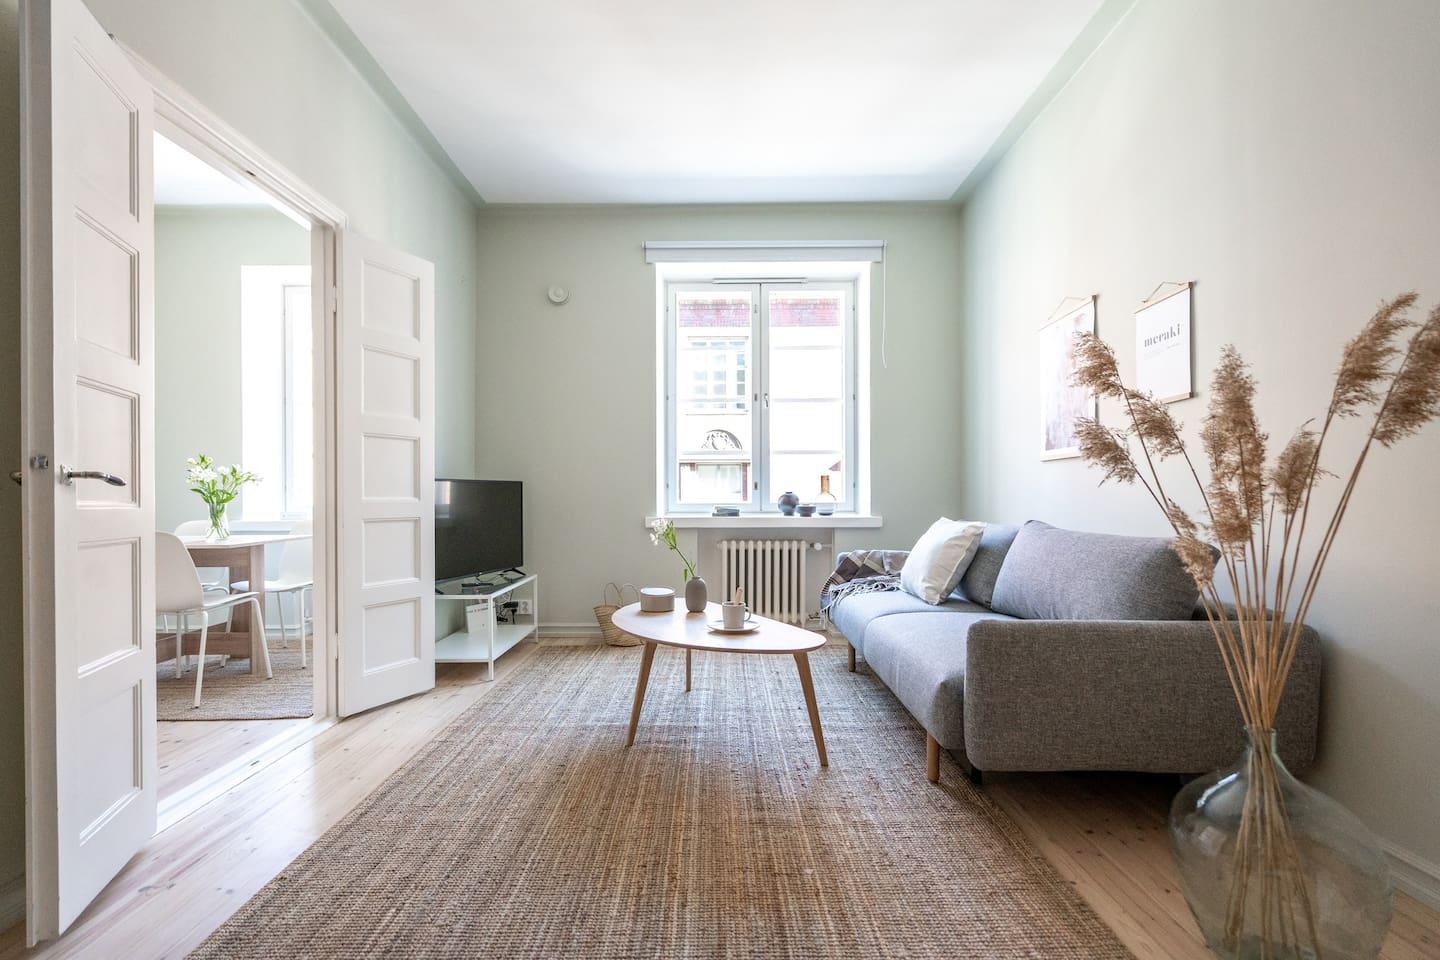 Newly renovated with scandinavian style standards.